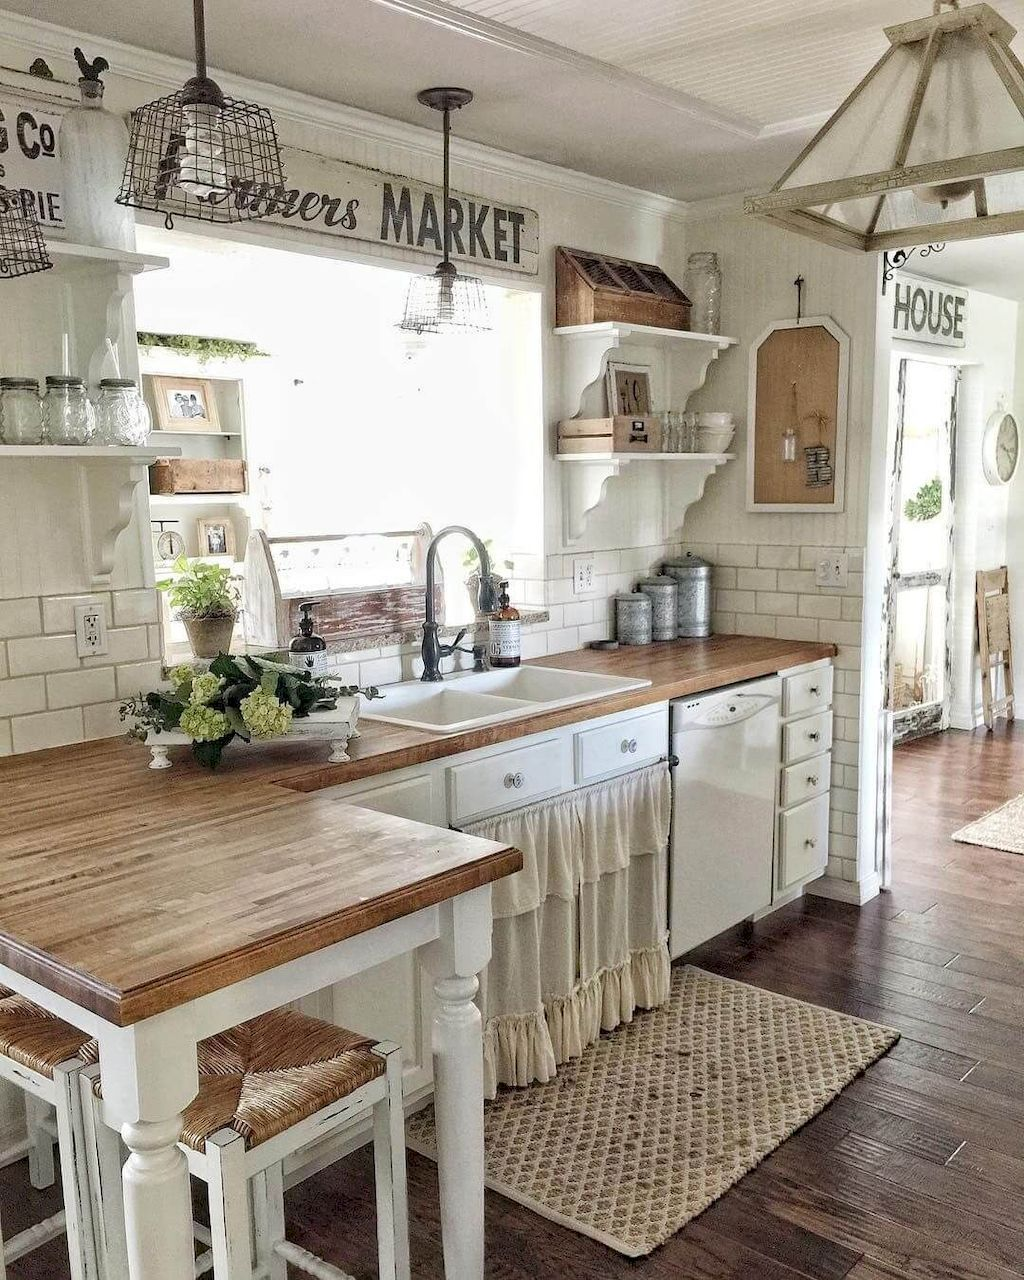 best rustic farmhouse kitchen cabinets in list 71 white farmhouse kitchens farmhouse kitchen on kitchen cabinets rustic farmhouse style id=37430